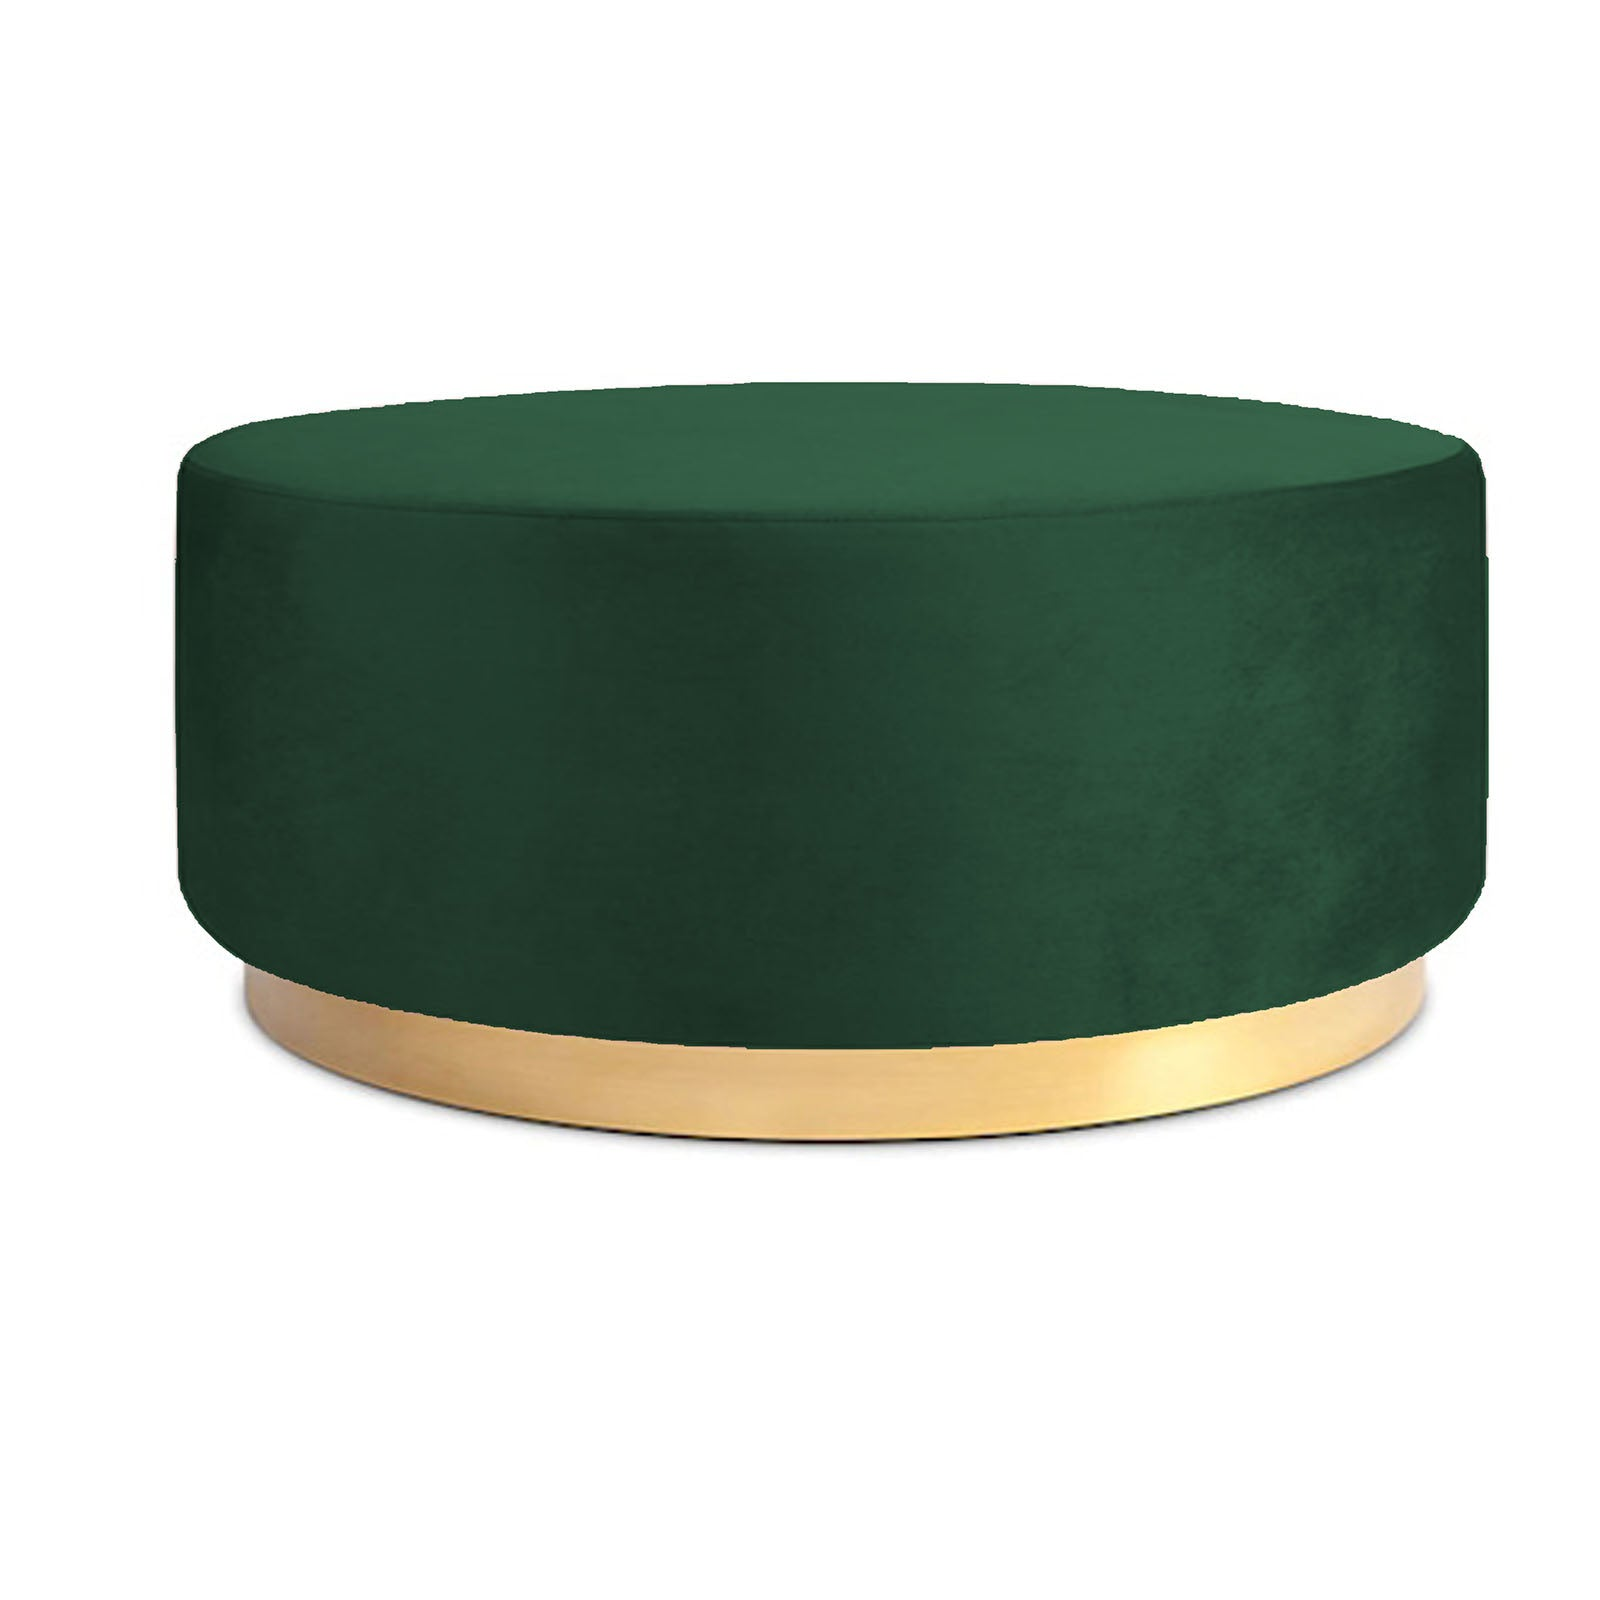 Velletri Pouff  TG-196-2-Green -  بوف من فيليتري - Shop Online Furniture and Home Decor Store in Dubai, UAE at ebarza